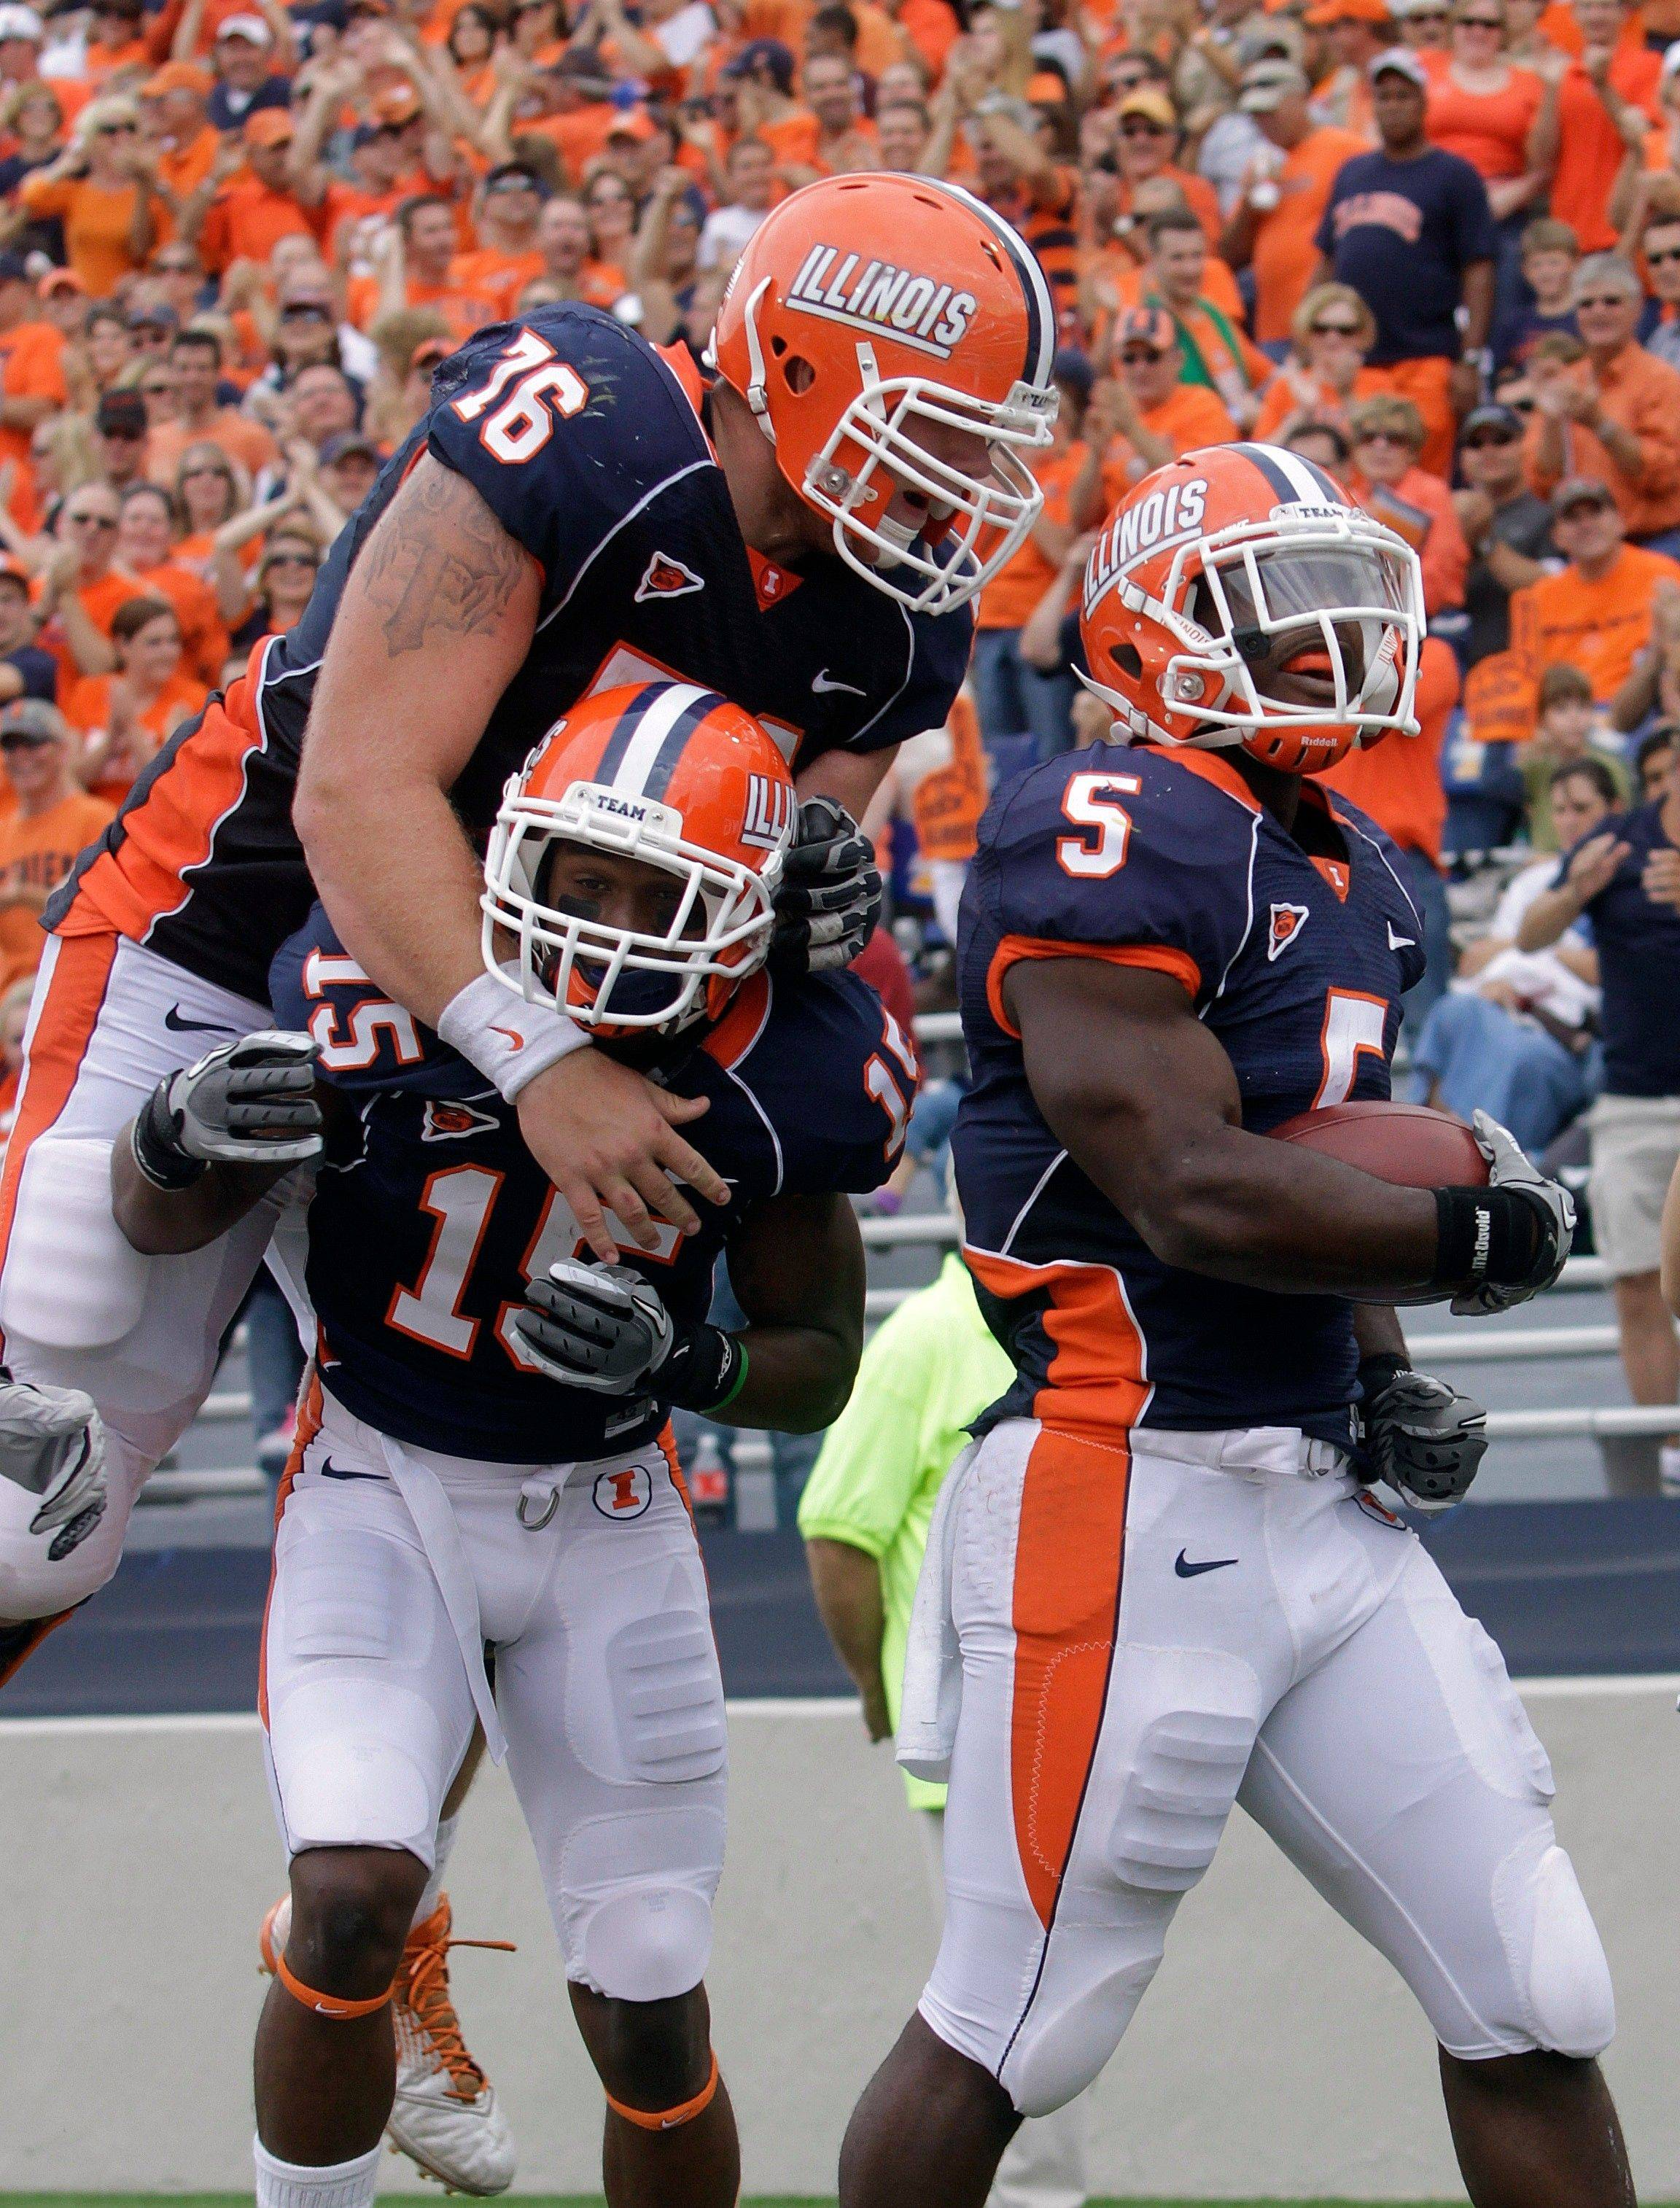 Illinois running back Donovonn Young (5) celebrates with offensive linesman Graham Pocic (76) and wide receiver Darius Millines (15) after Young scored a touchdown against South Dakota State in Champaignon Saturday. Illinois defeated South Dakota State 56-3.